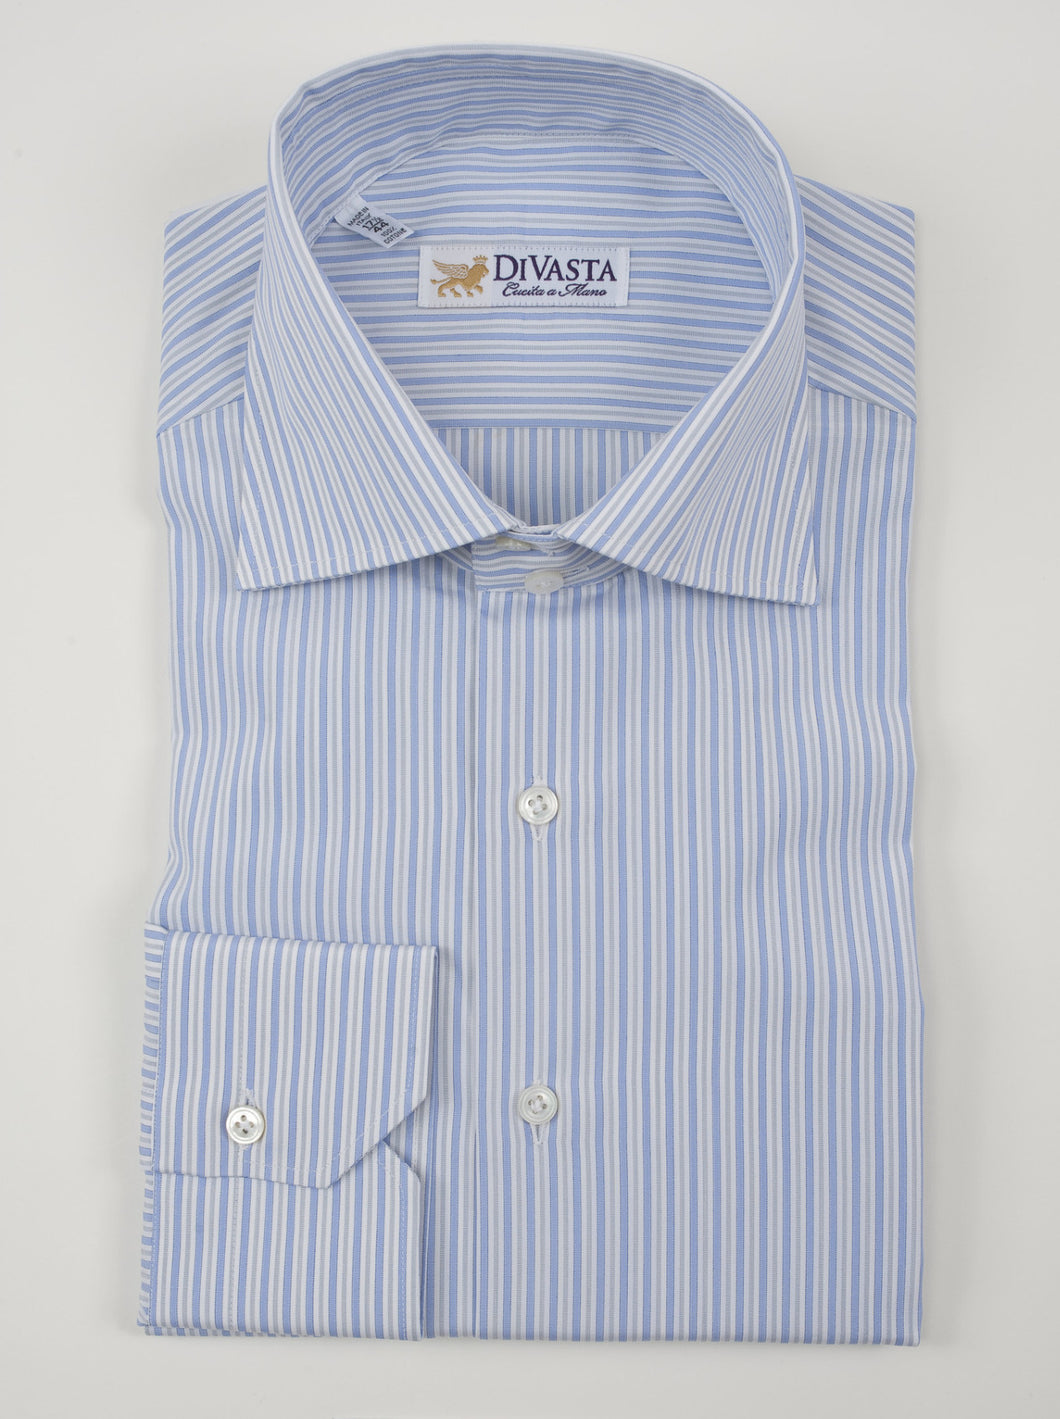 Men's Dress Shirt-M2 619191